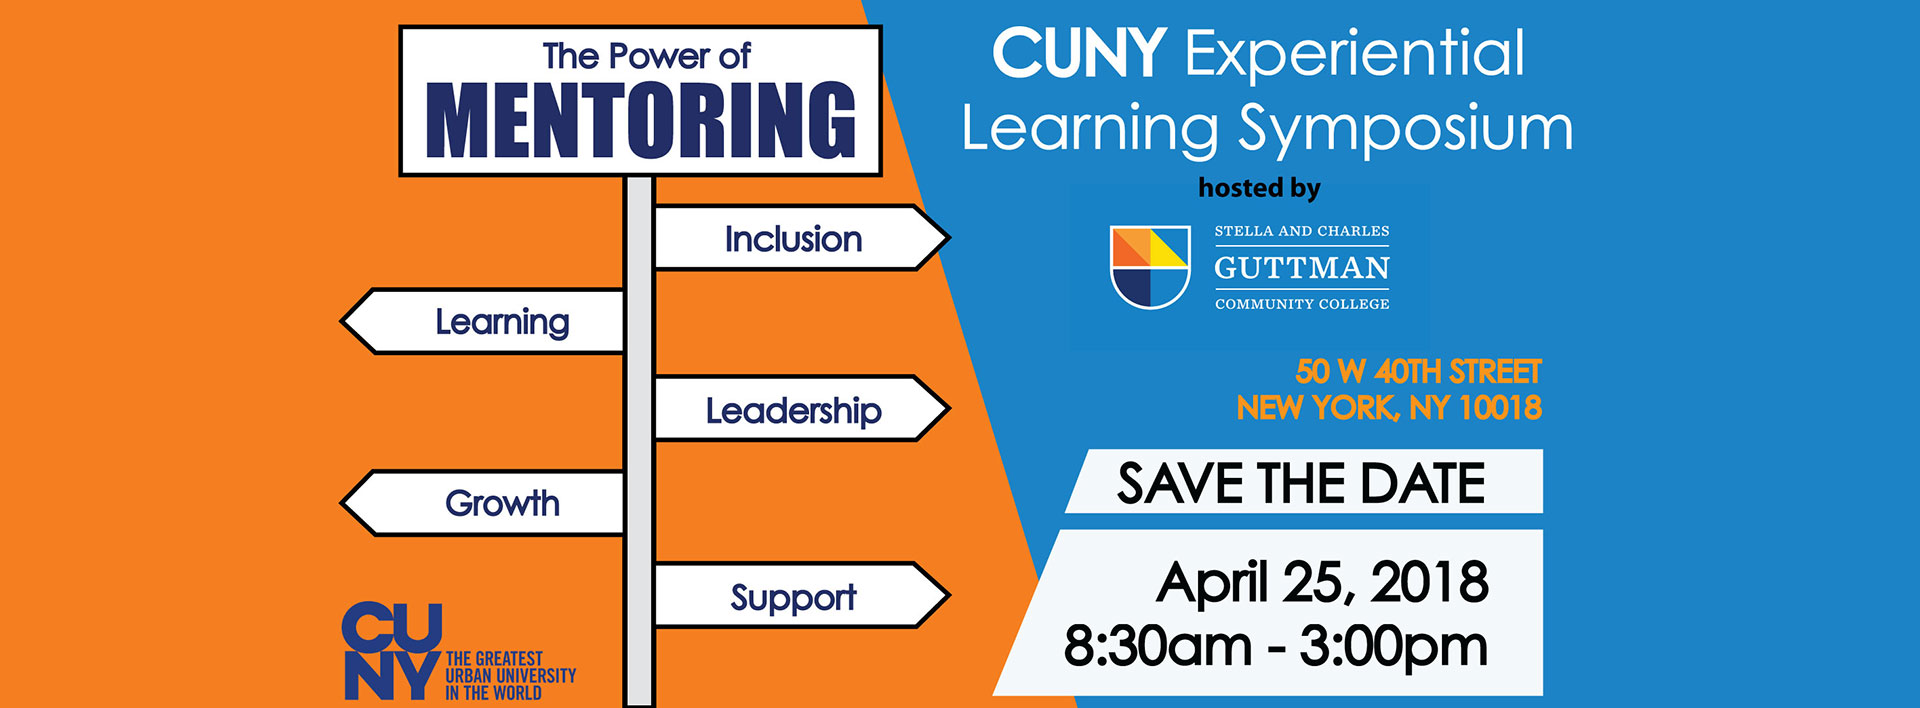 CUNY Experiential Learning Symposium: The Power of Mentoring. Save the Date: April 25, 2018, 8:30 am to 3:00 pm, Guttman Community College